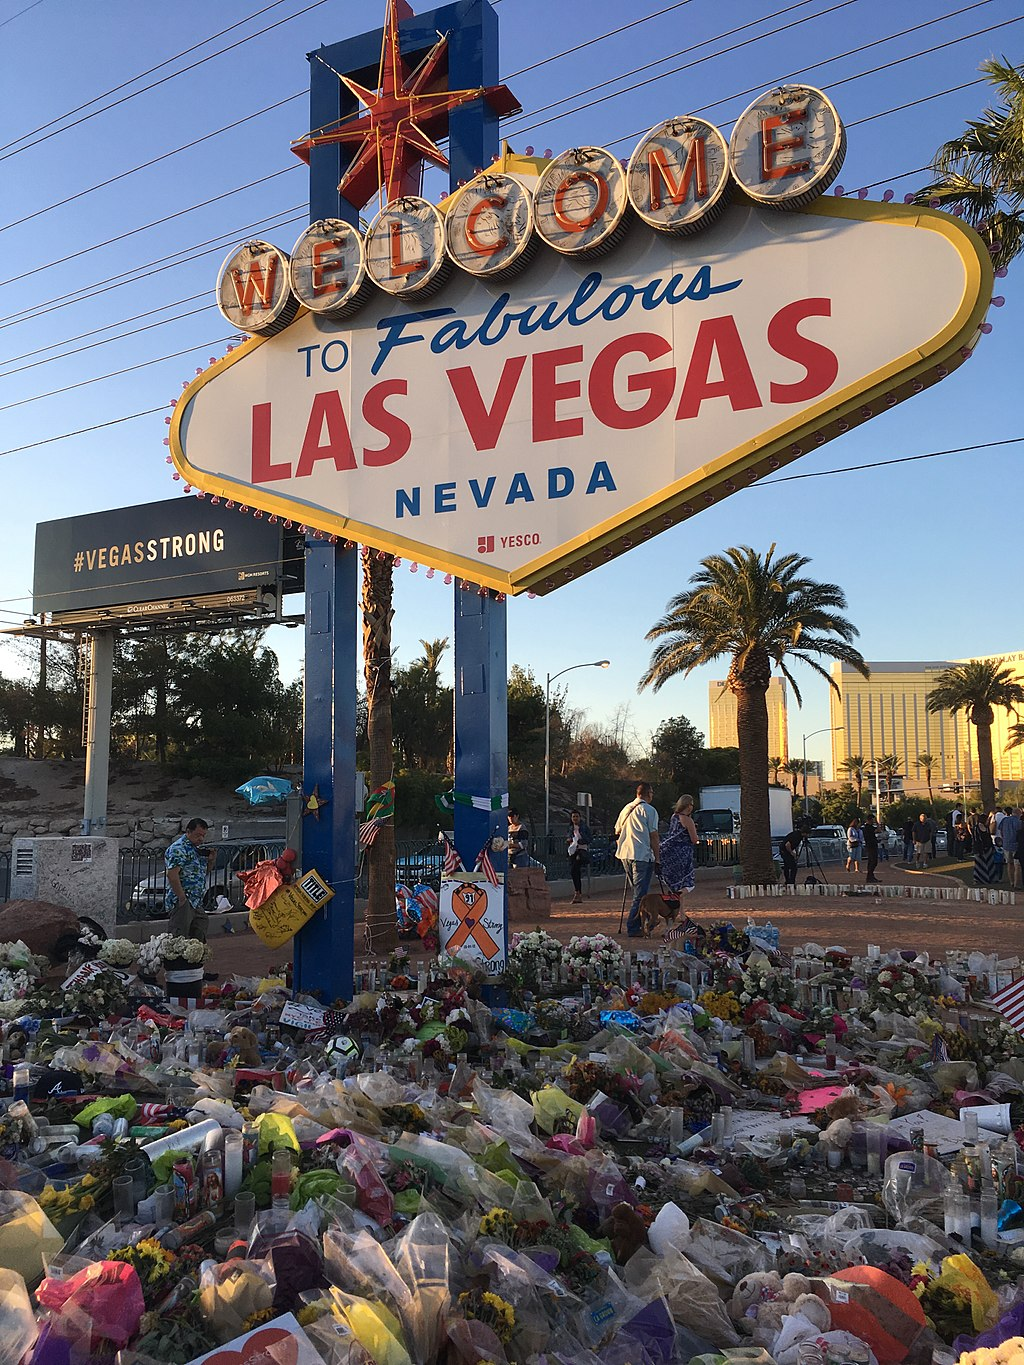 The Las Vegas Sign on The Strip covered in flowers in the wake of the 2017 Las Vegas mass shooting. Photo © Rmvisuals, CC BY-SA 4.0, via Wikimedia Commons